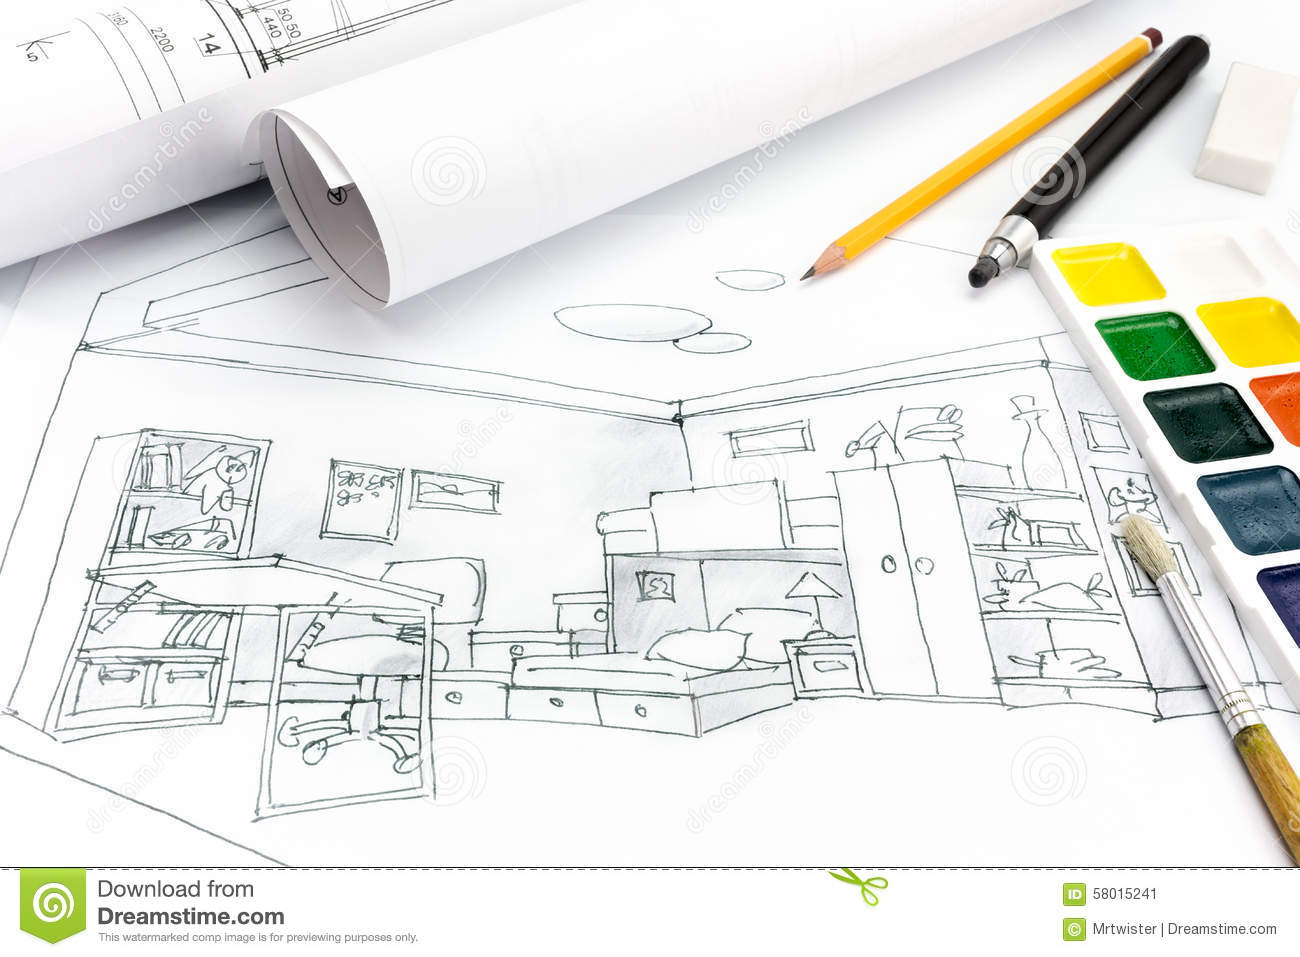 Designers drawing tools on colored draft sketch of living for Room drawing tool